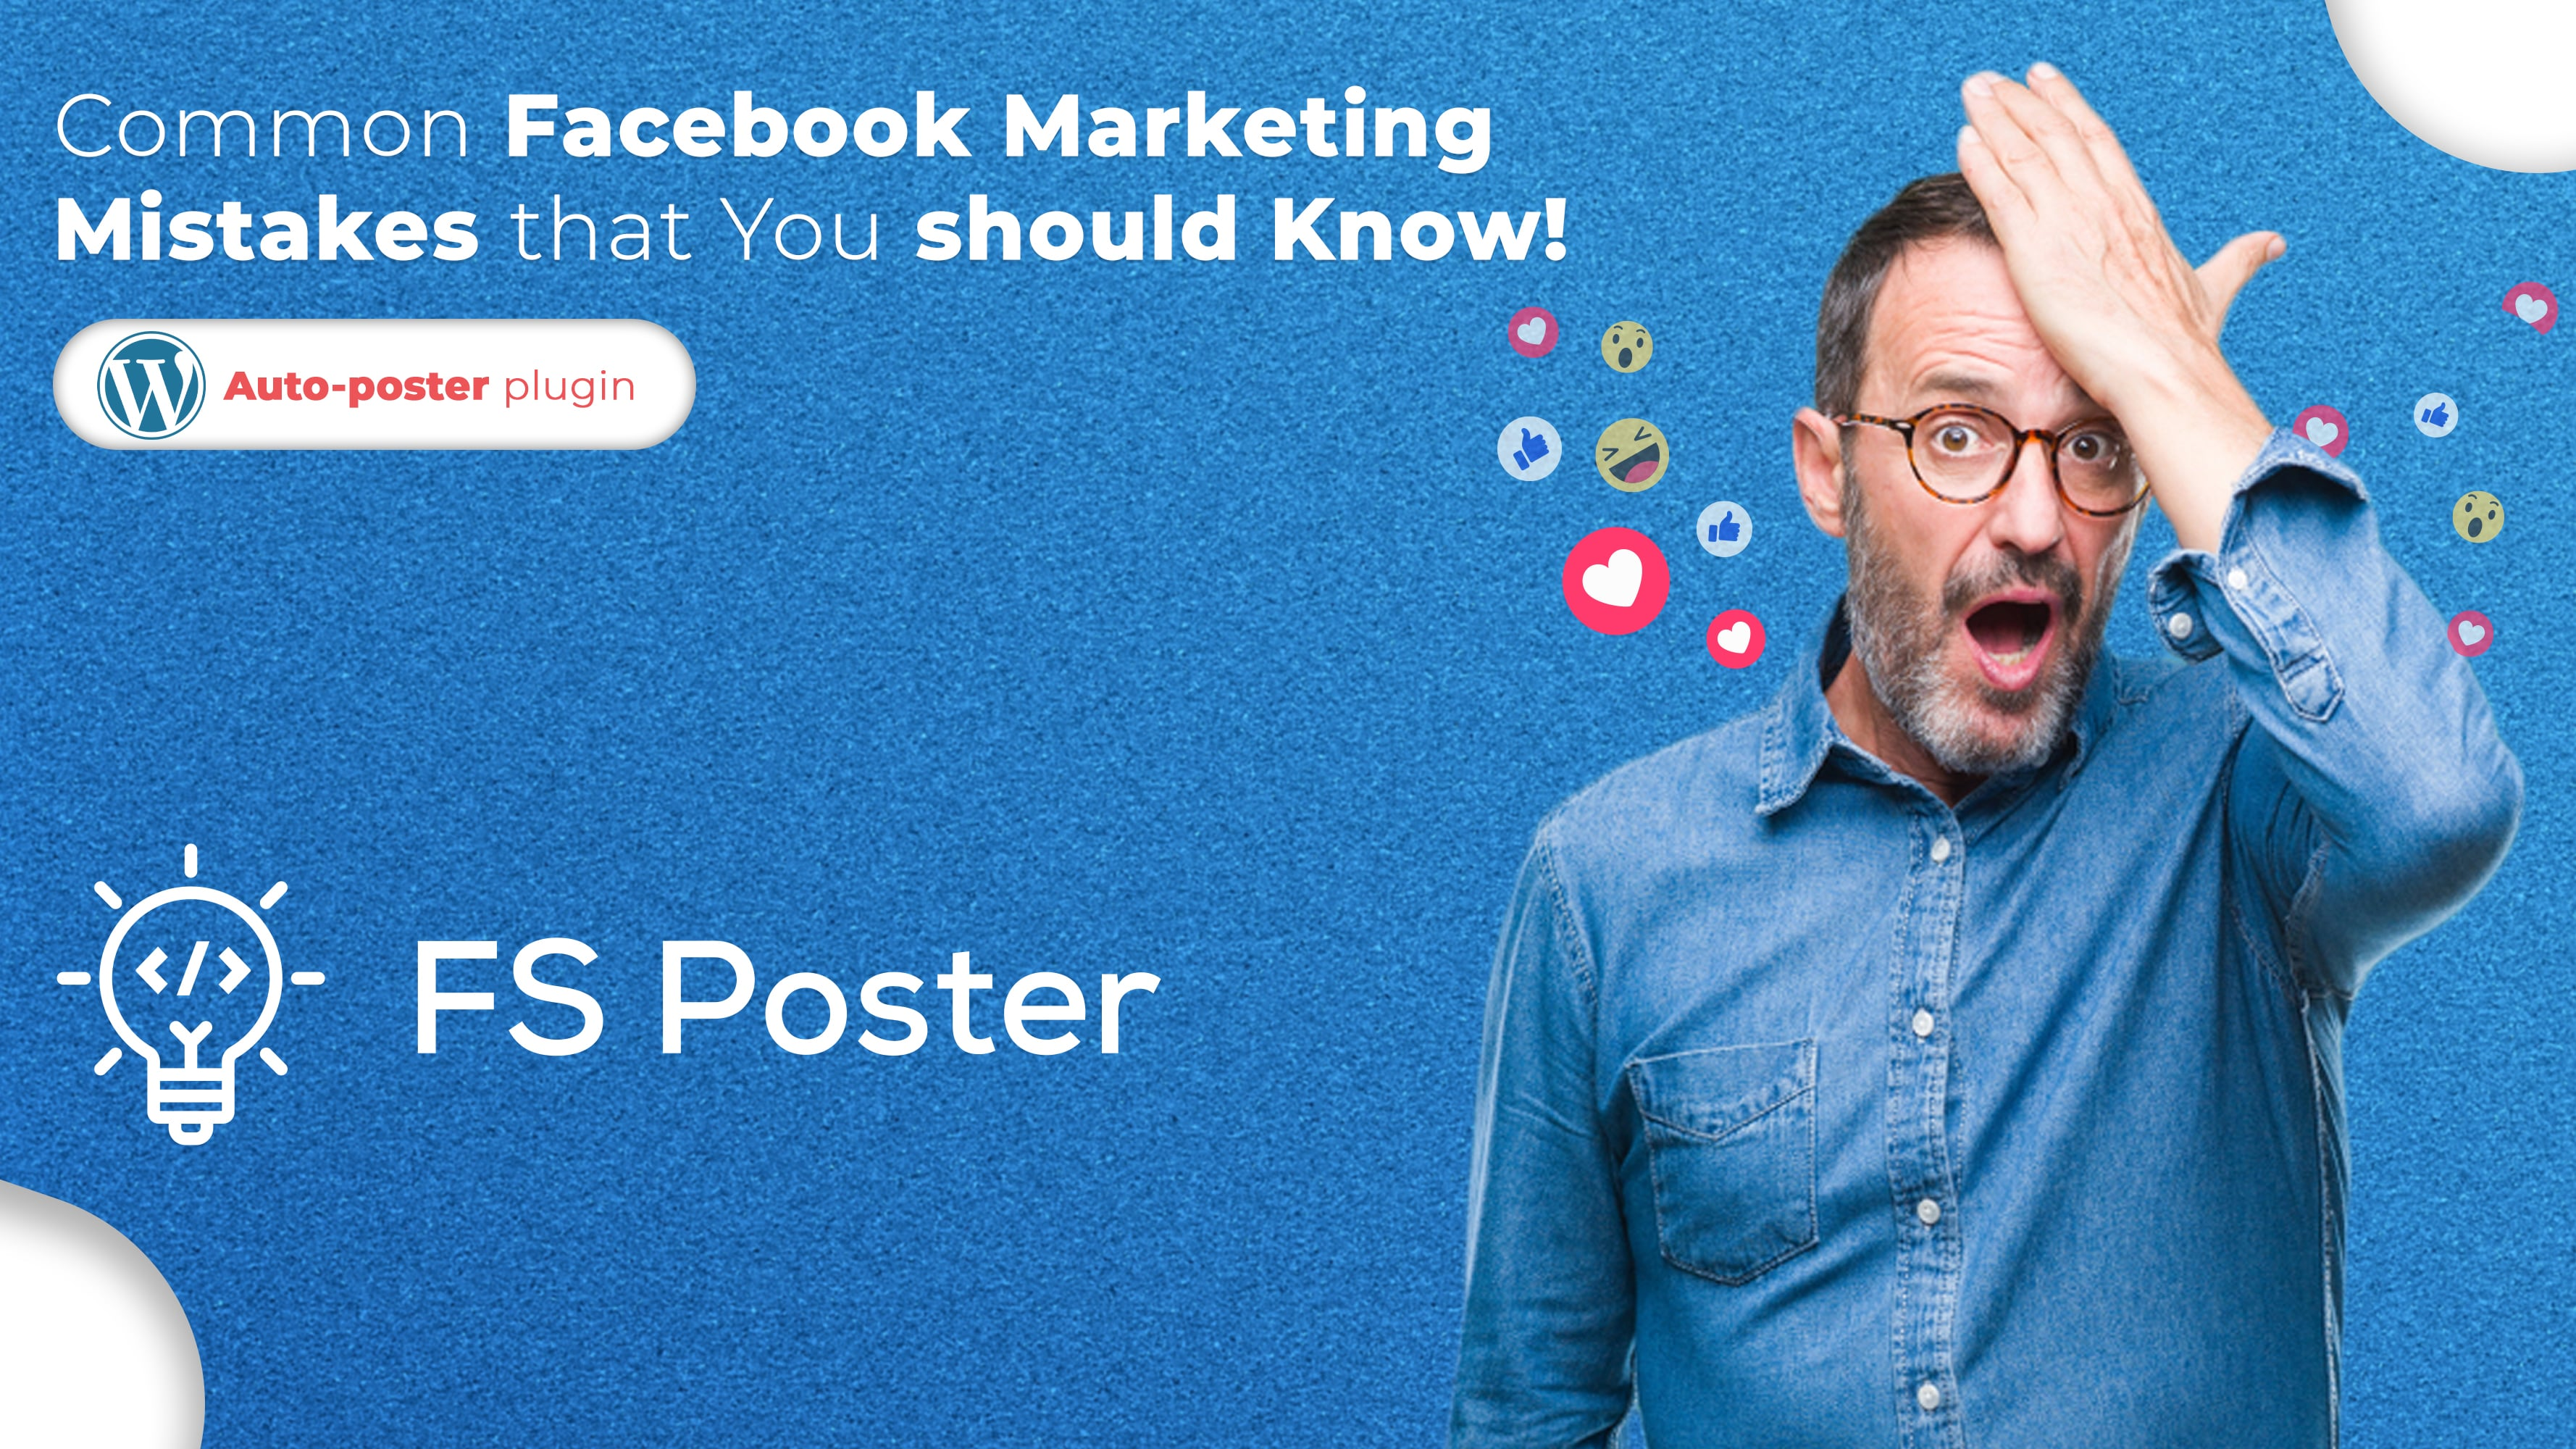 Common Facebook Marketing Mistakes That You Should Know